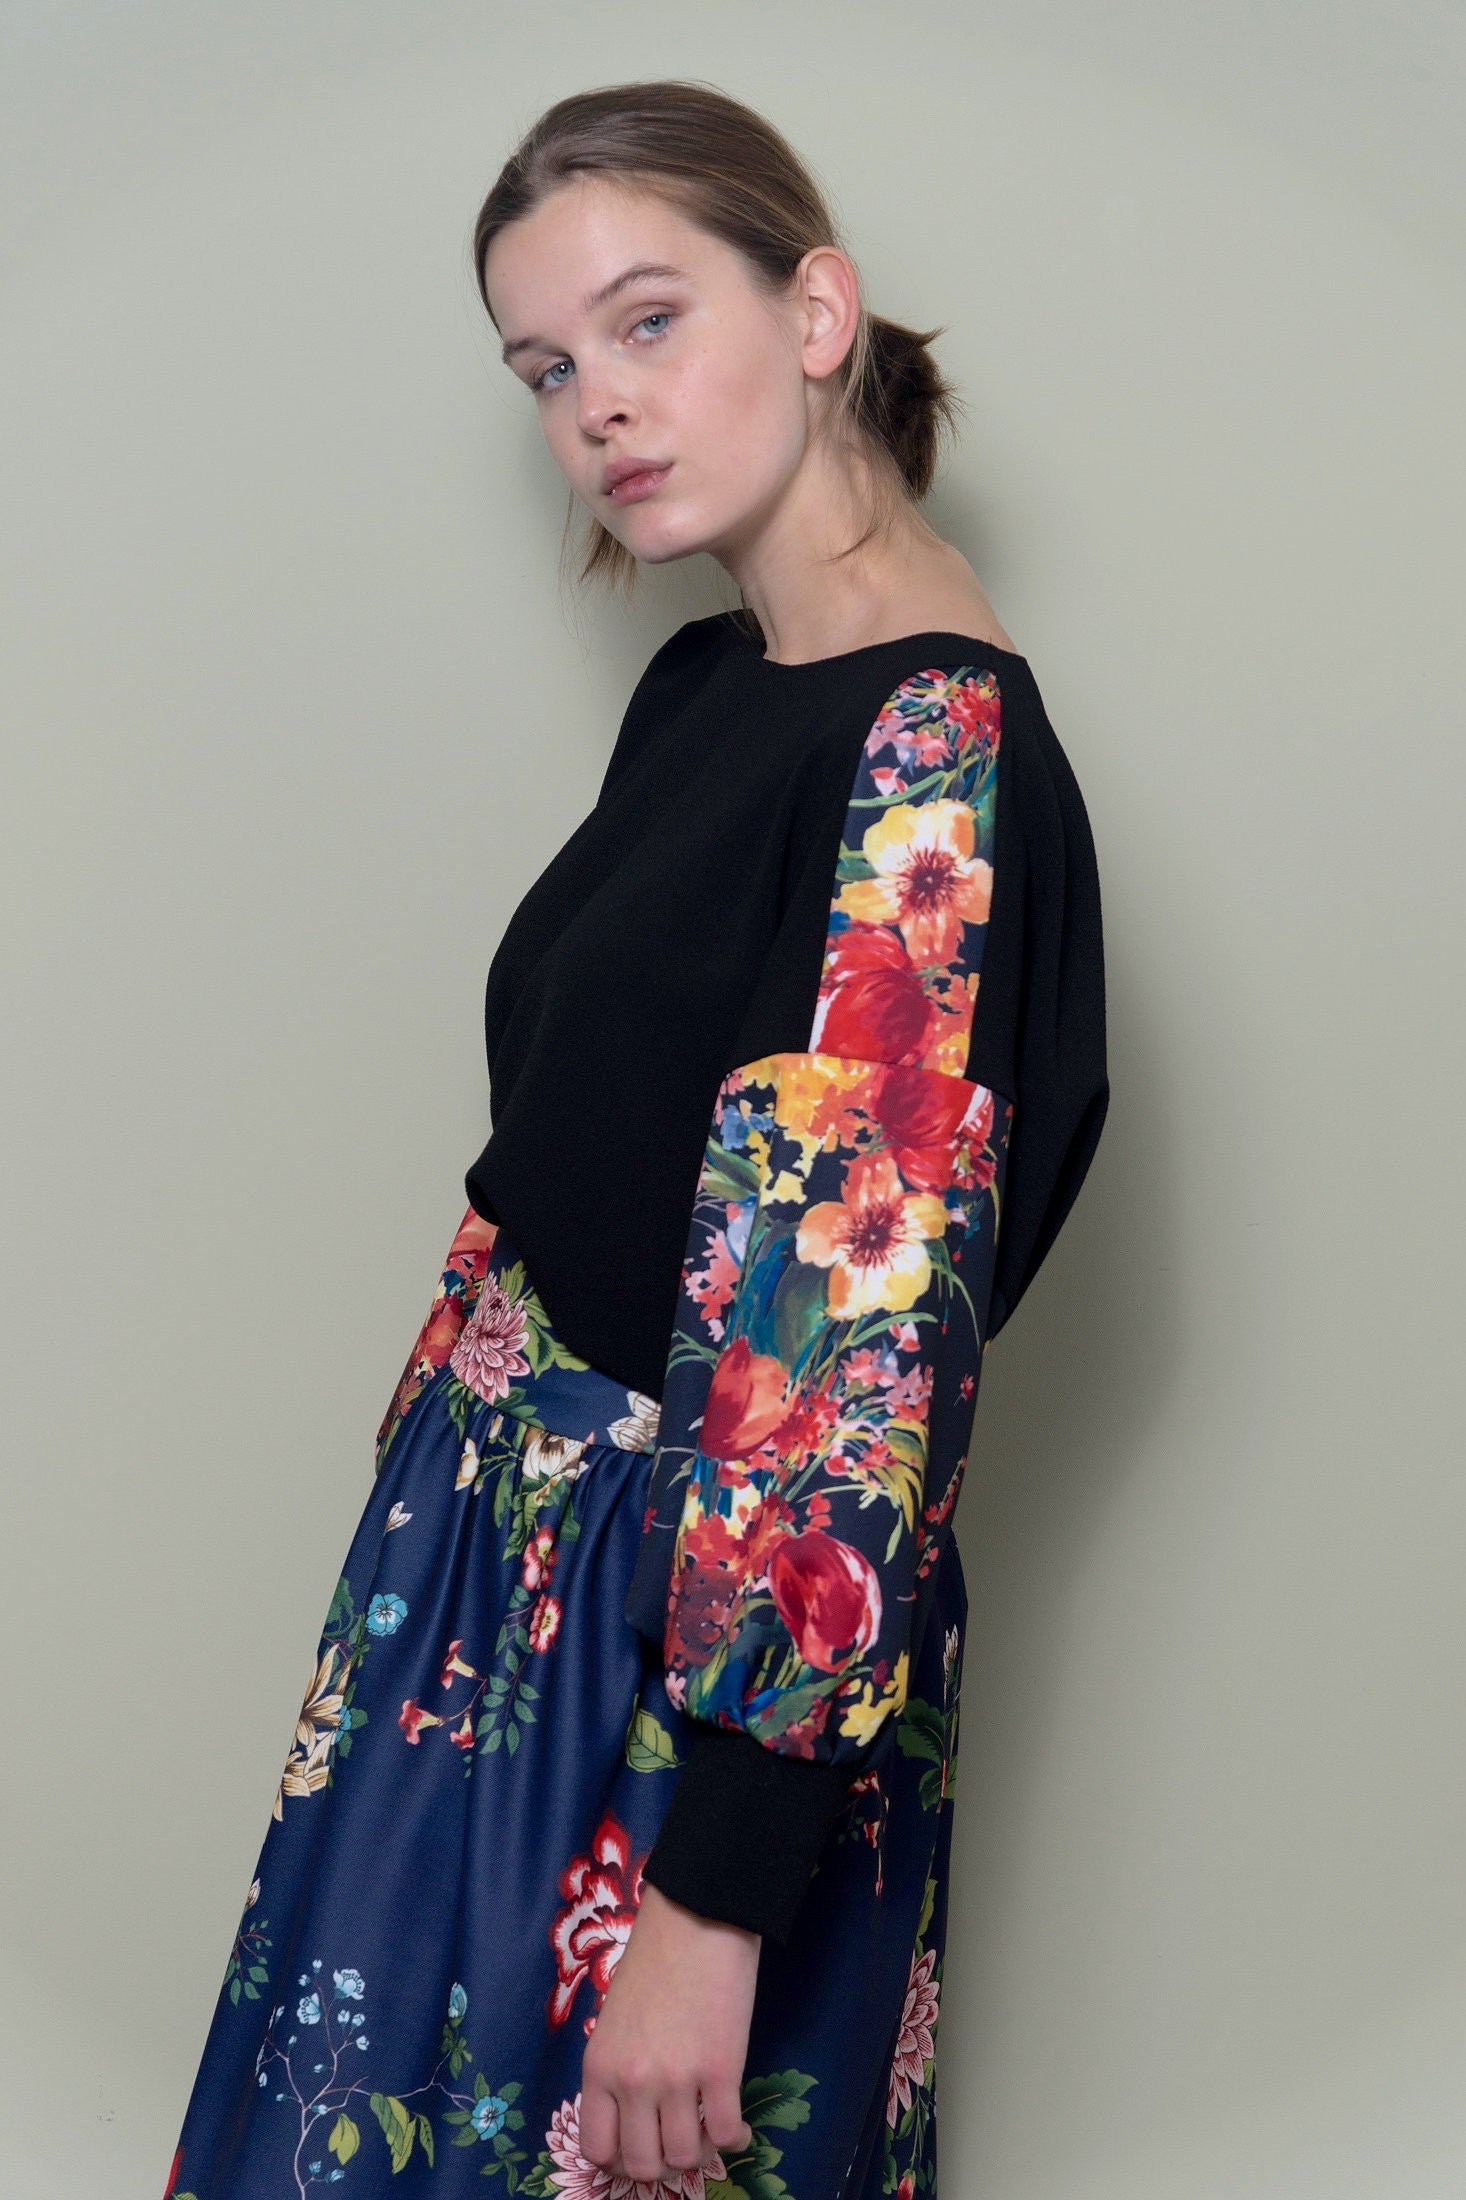 Black Oversized Top With Bright Floral Sleeves by Minkie London on OOSTOR.com